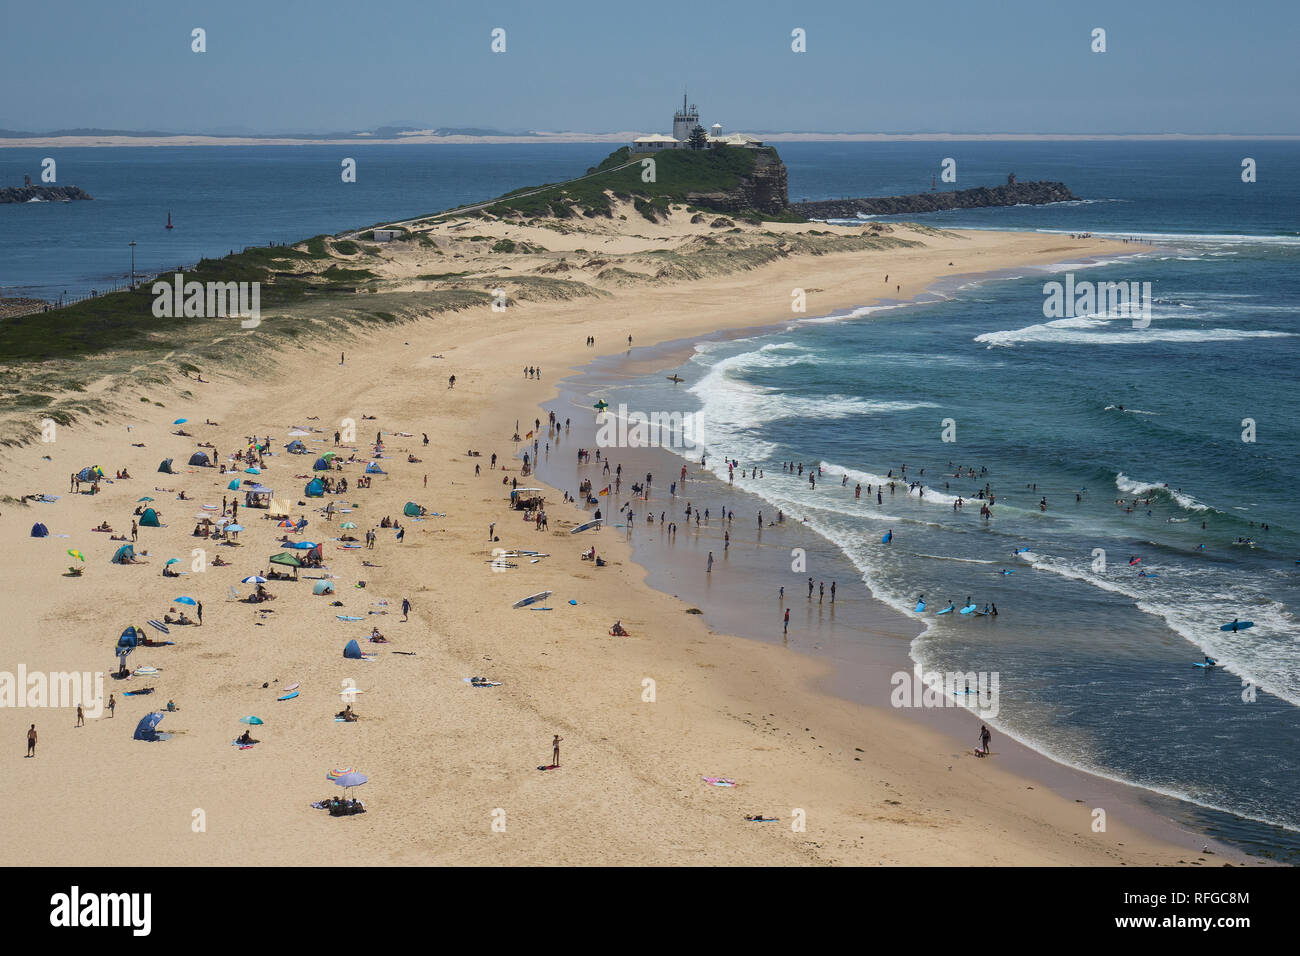 Australia, New South Wales, Newcastle, Nobby's beach & lighthouse - Stock Image